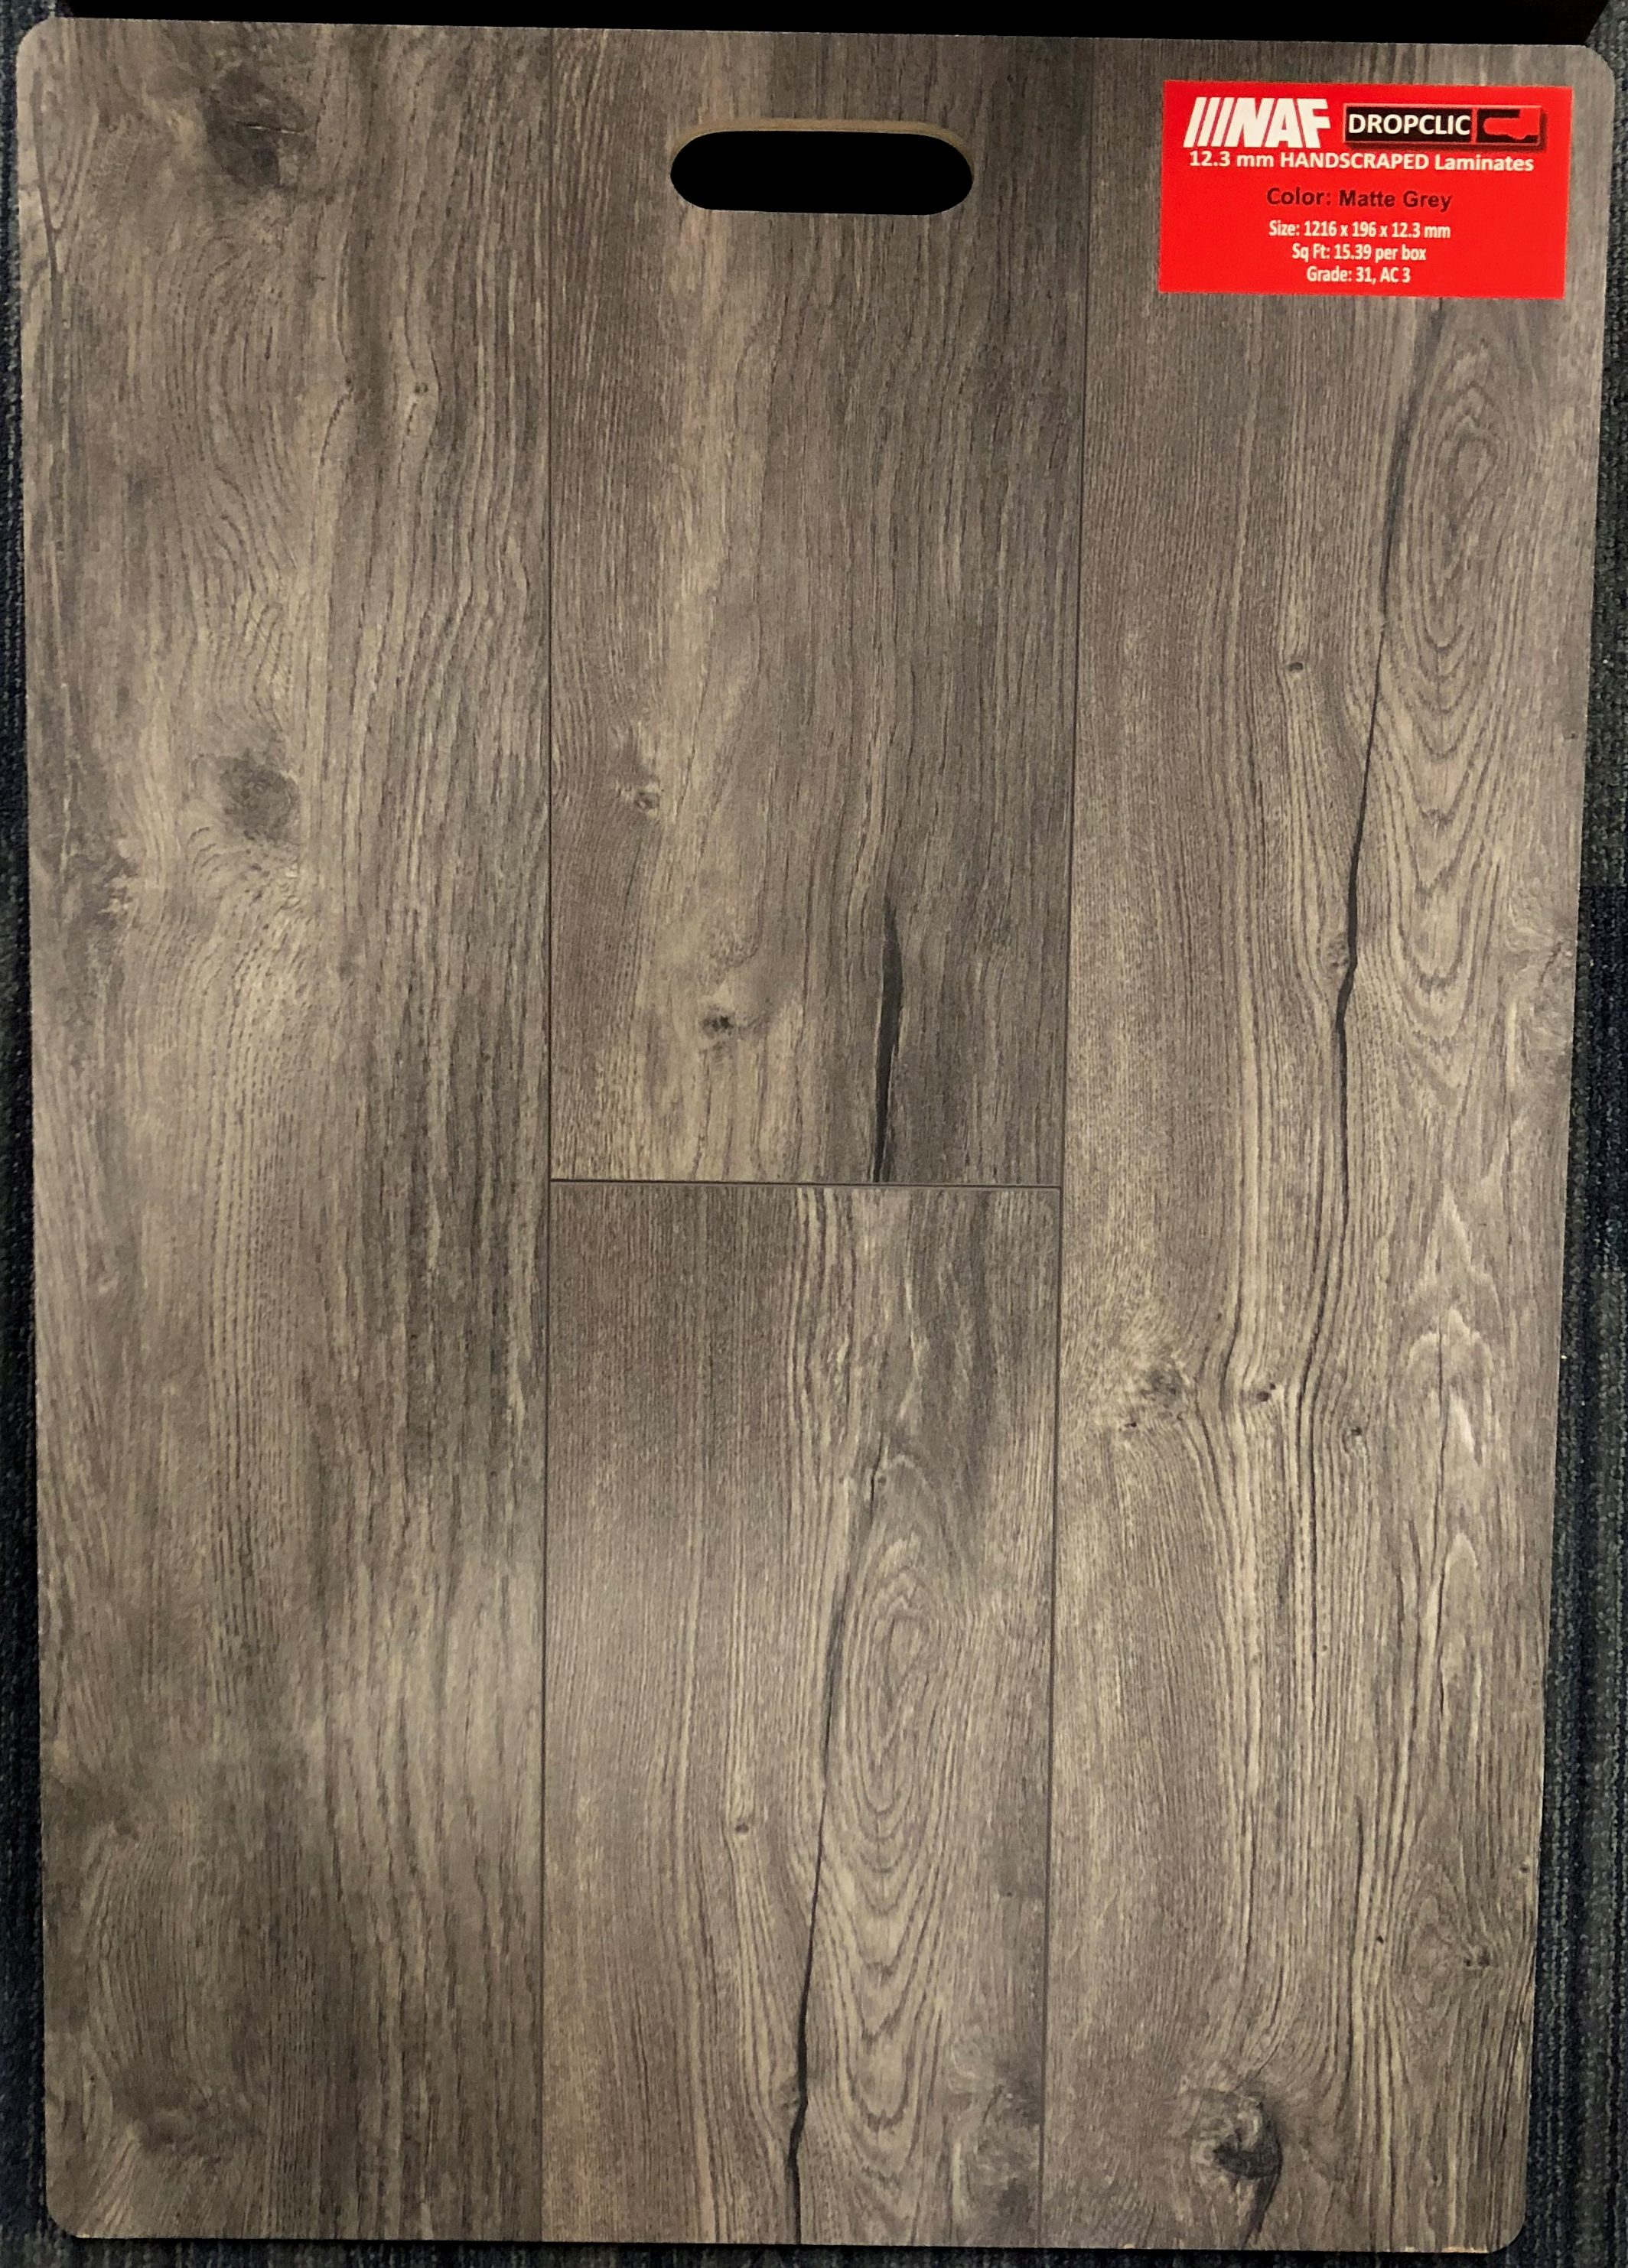 Matte Grey NAF 12.3mm Handscraped Laminate Flooring Dropclic Image